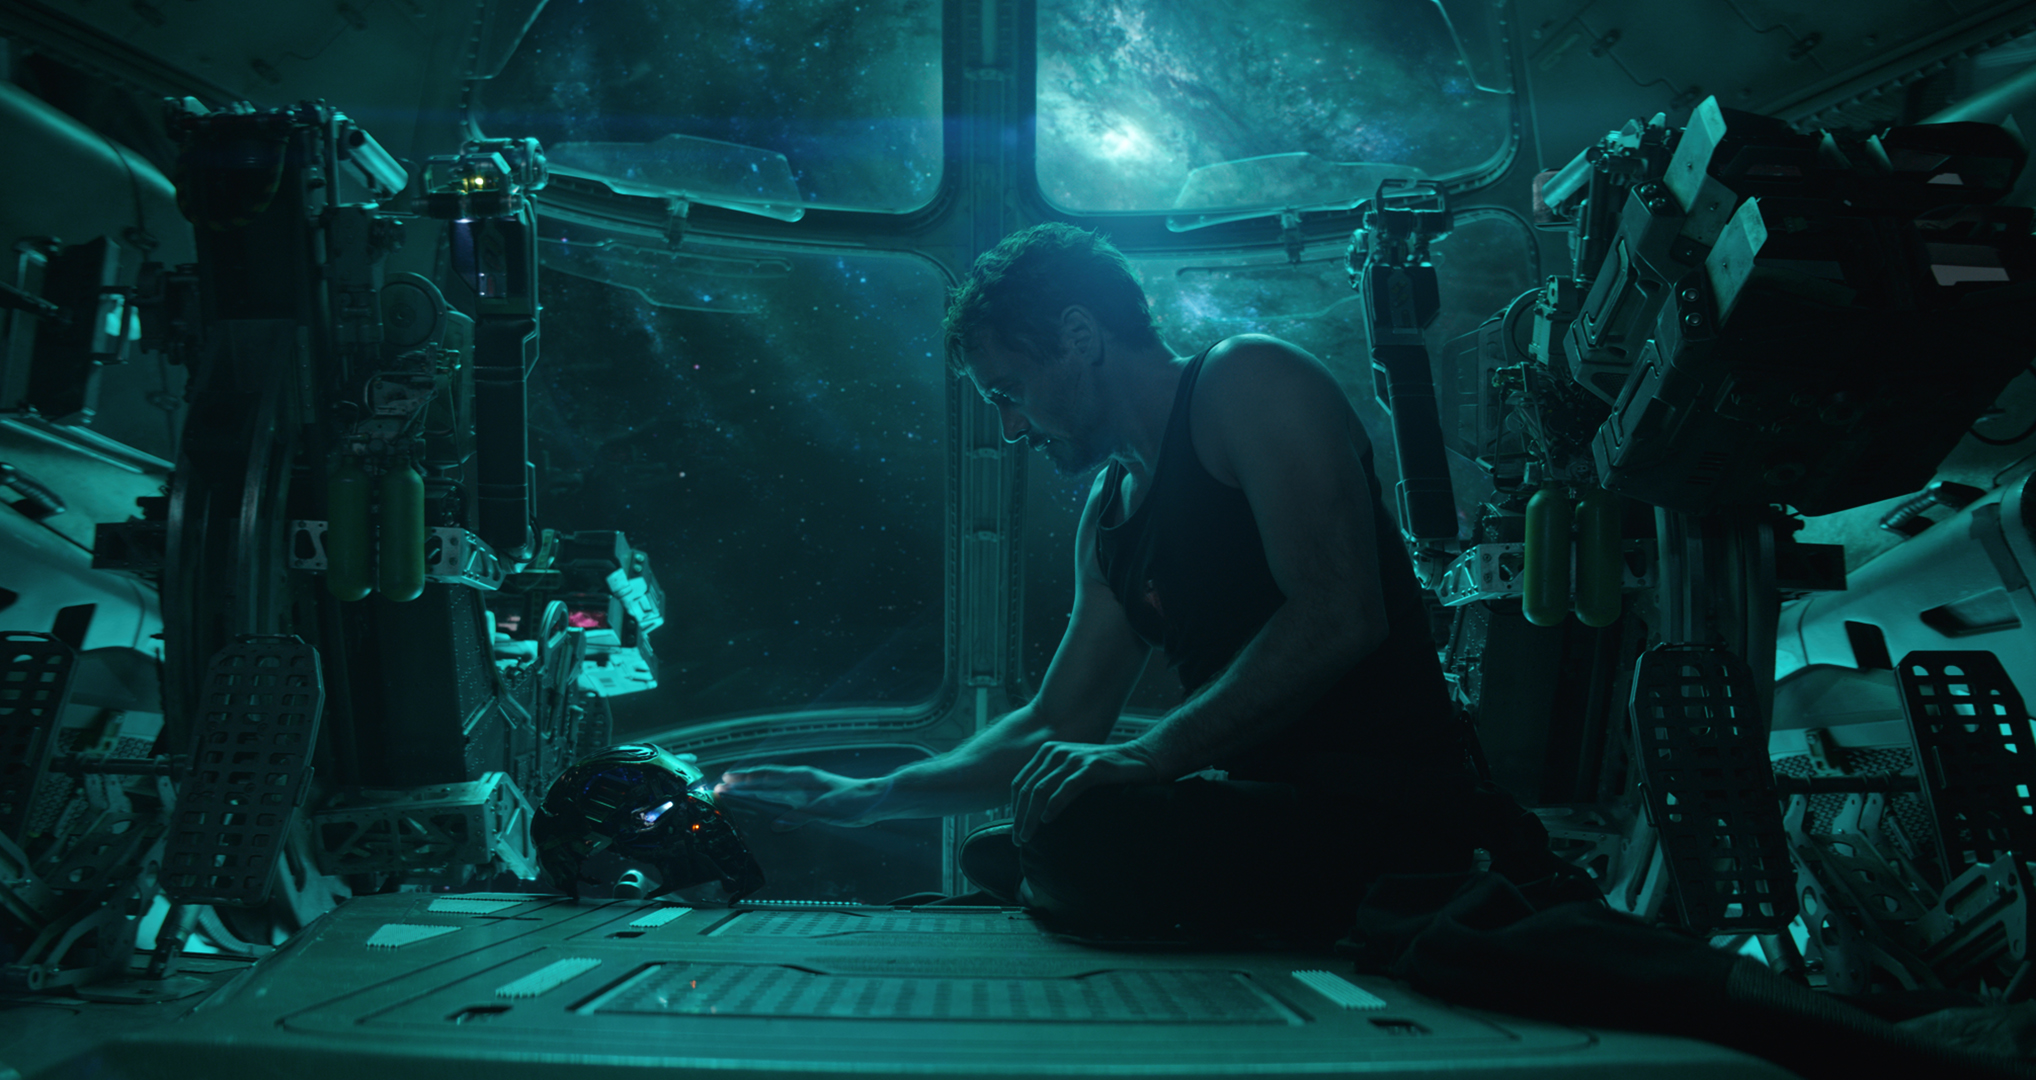 Avengers: Endgame: 8 Things The Trailers Hinted About Captain America